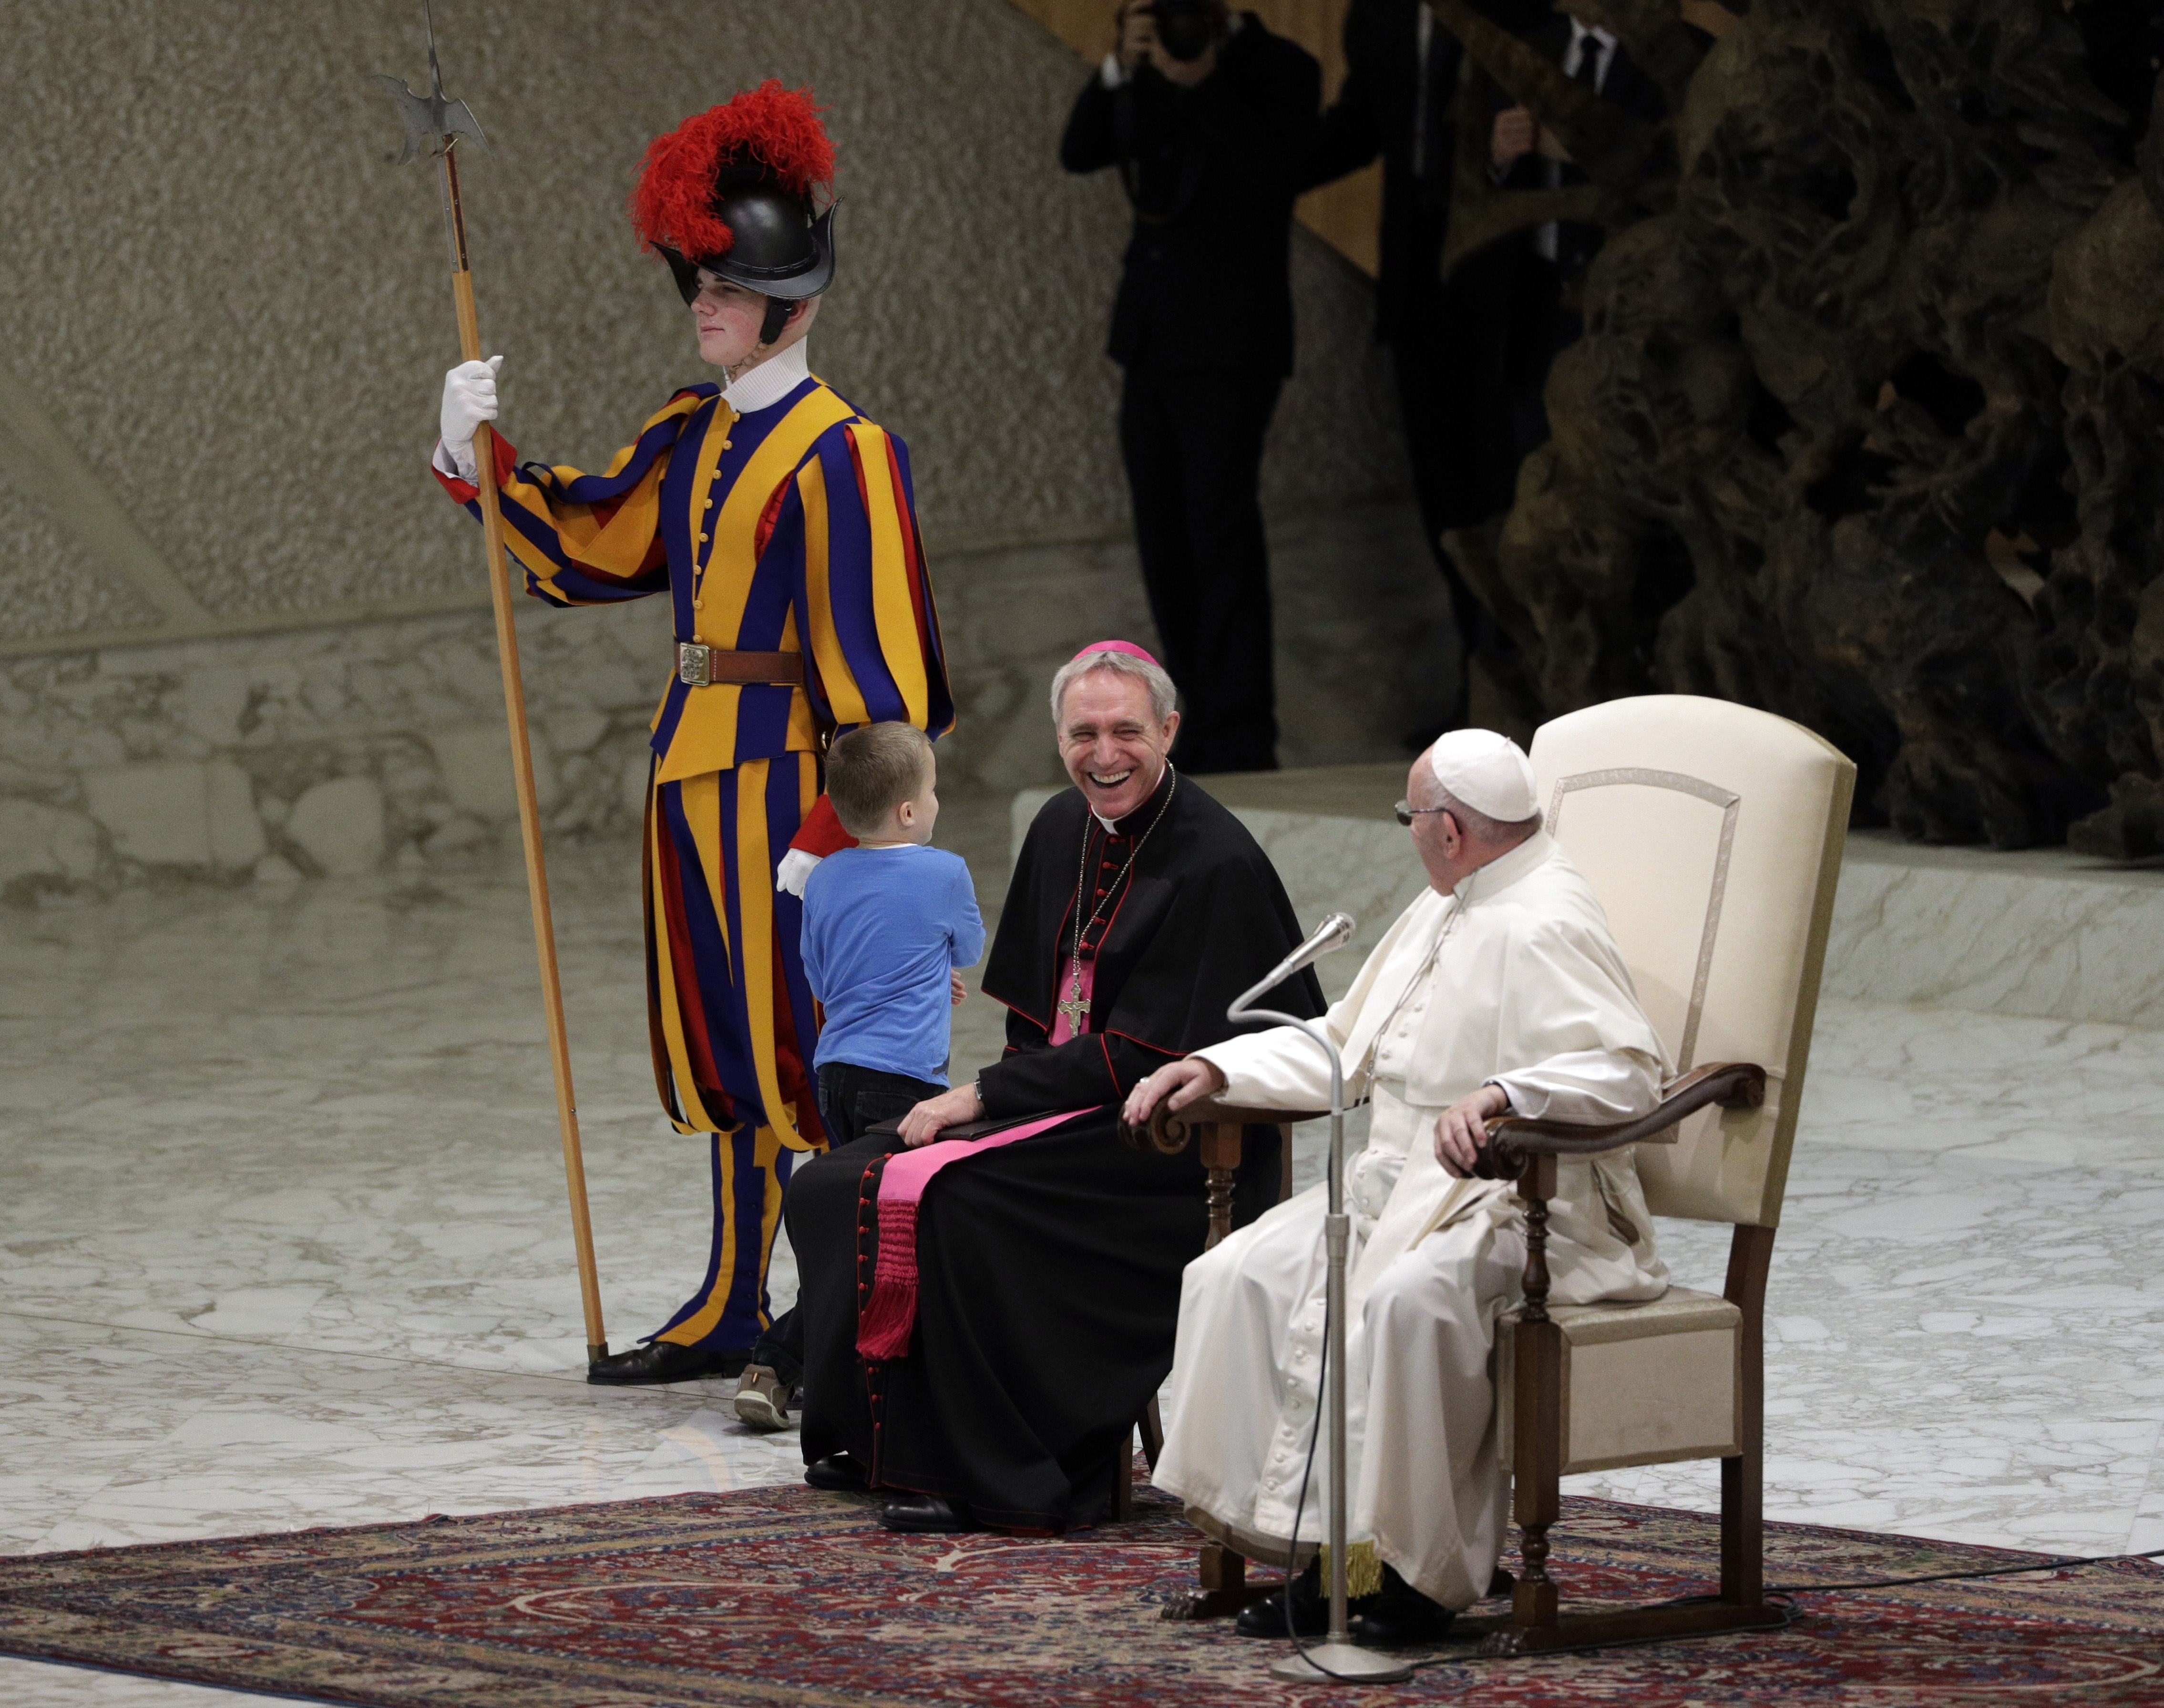 Pop Francis and Archbishop George Gaenswein laugh as the boy comes onstage